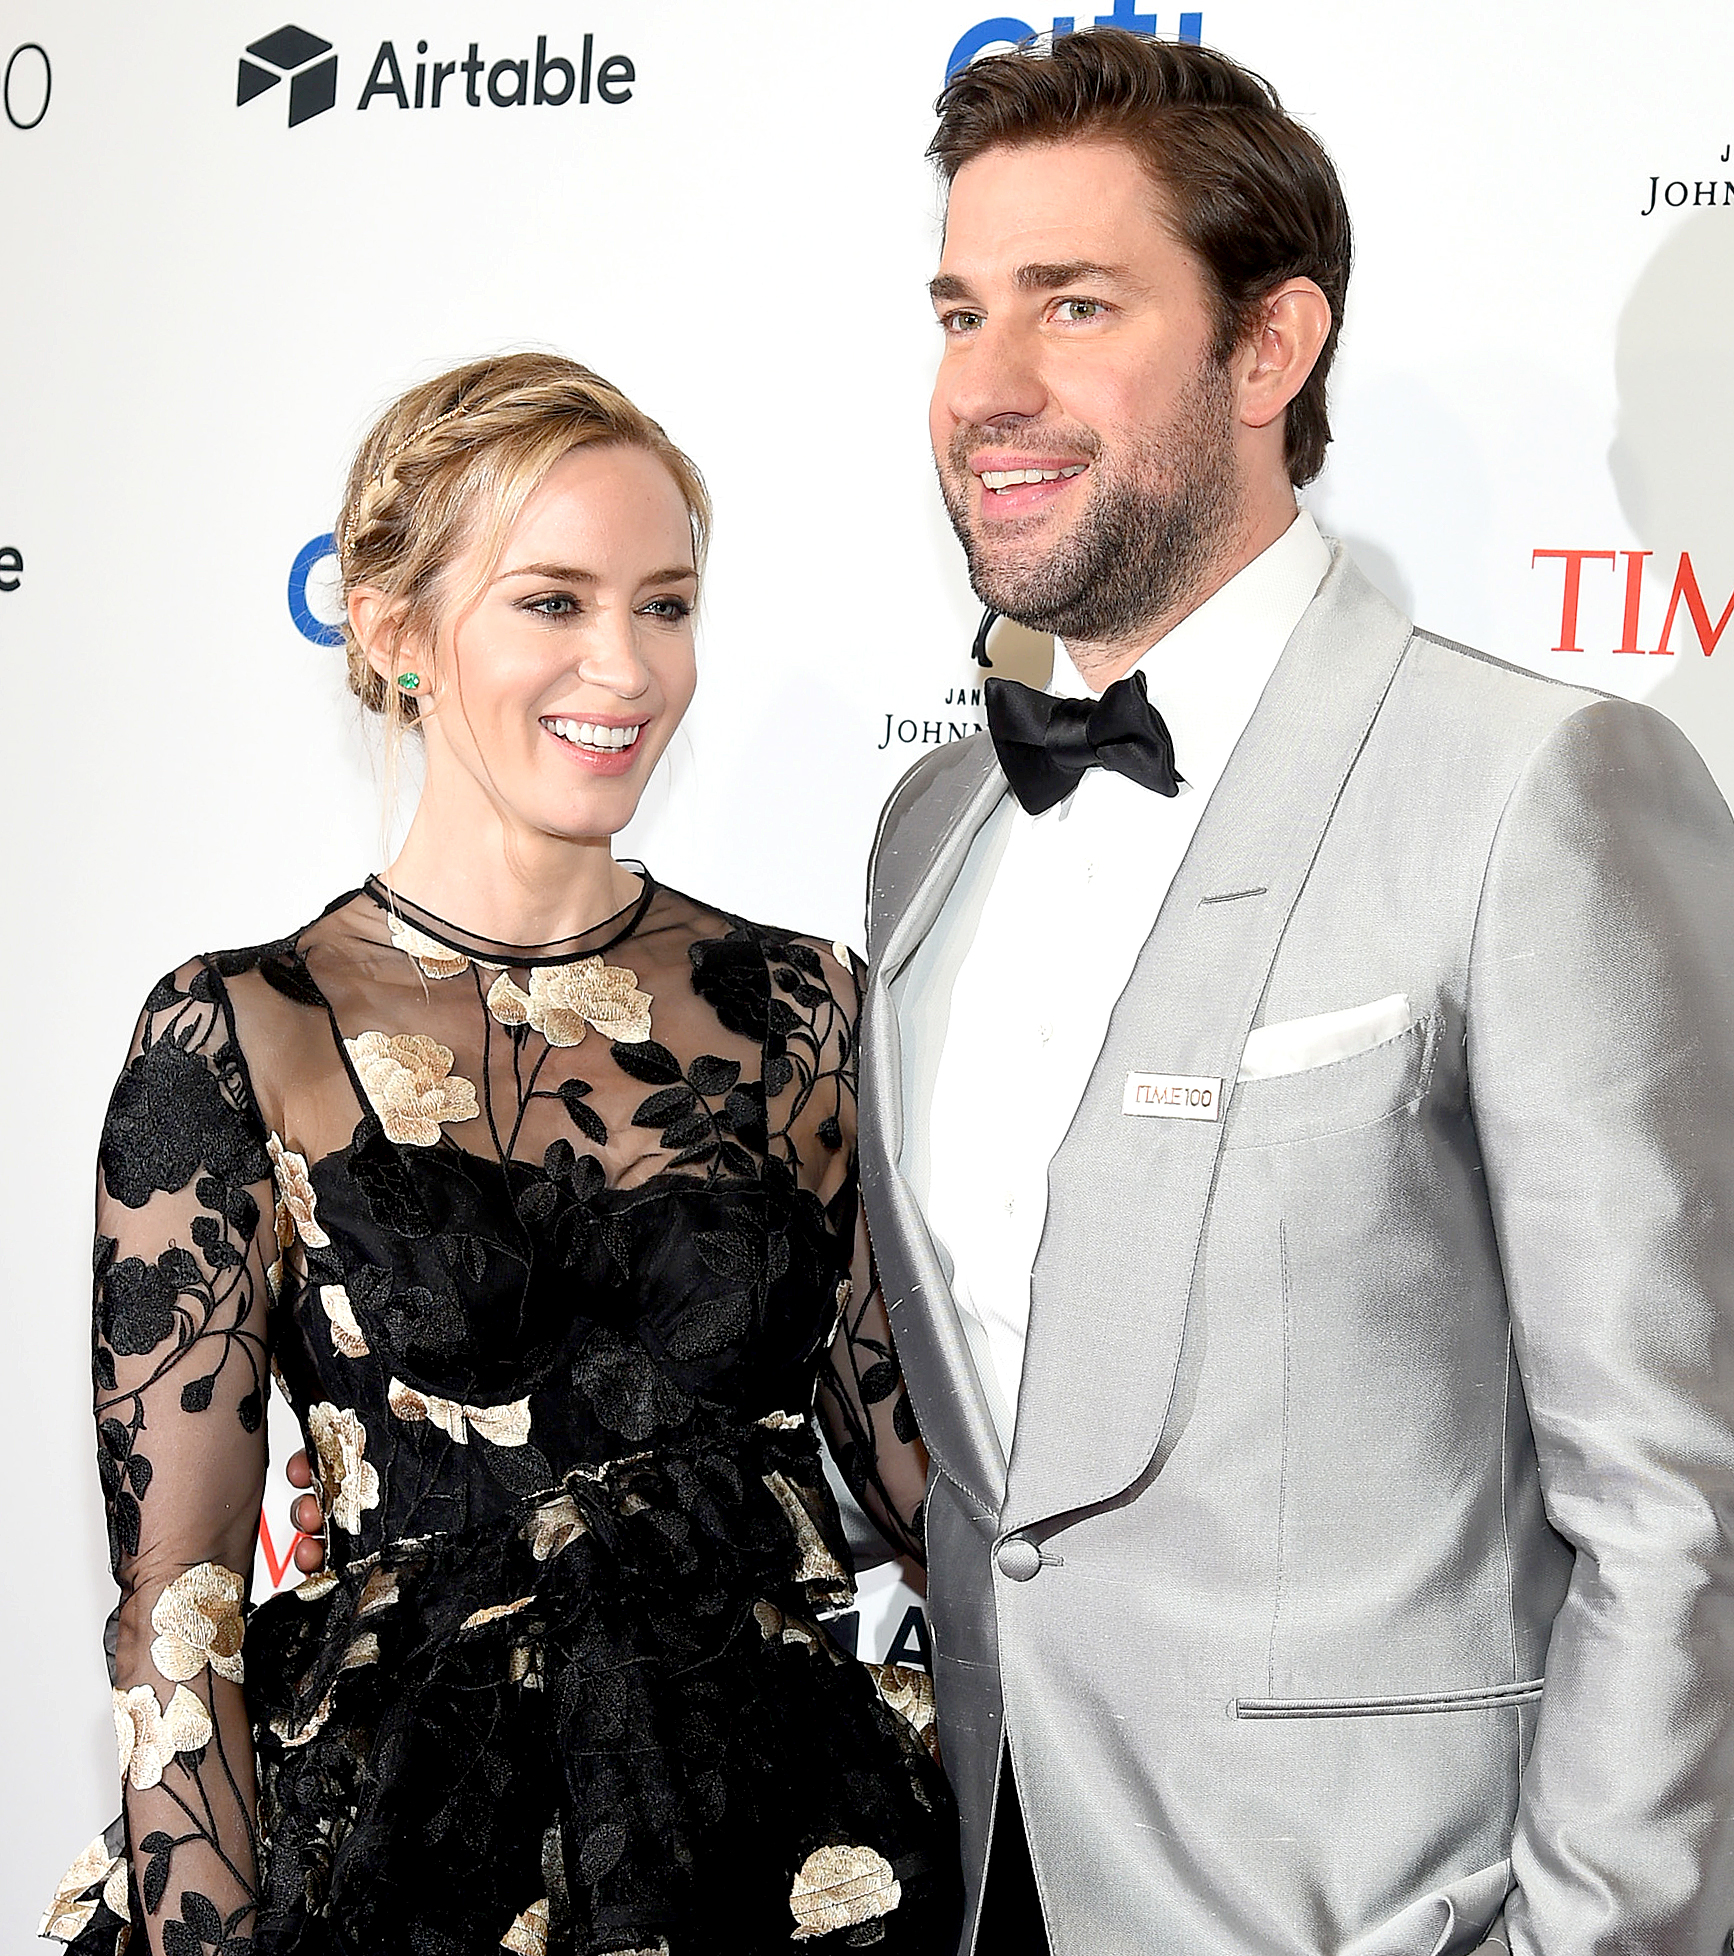 """John-Krasinski-and-Emily-Blunt-love-quotes - """"The air changes in the room when she starts doing what she does,"""" Krasinski told Vanity Fair in January 2018. """"It's so honest and so pure and so powerful. It's like a superpower that she can just unlock and do so specifically with not many attempts. For me, I love acting, and I'm so lucky to be doing it. But she's on another plane. This weird intersection happened while filming where I totally forgot I was her husband. I was just watching her performance and was lucky enough to be in the front row."""""""